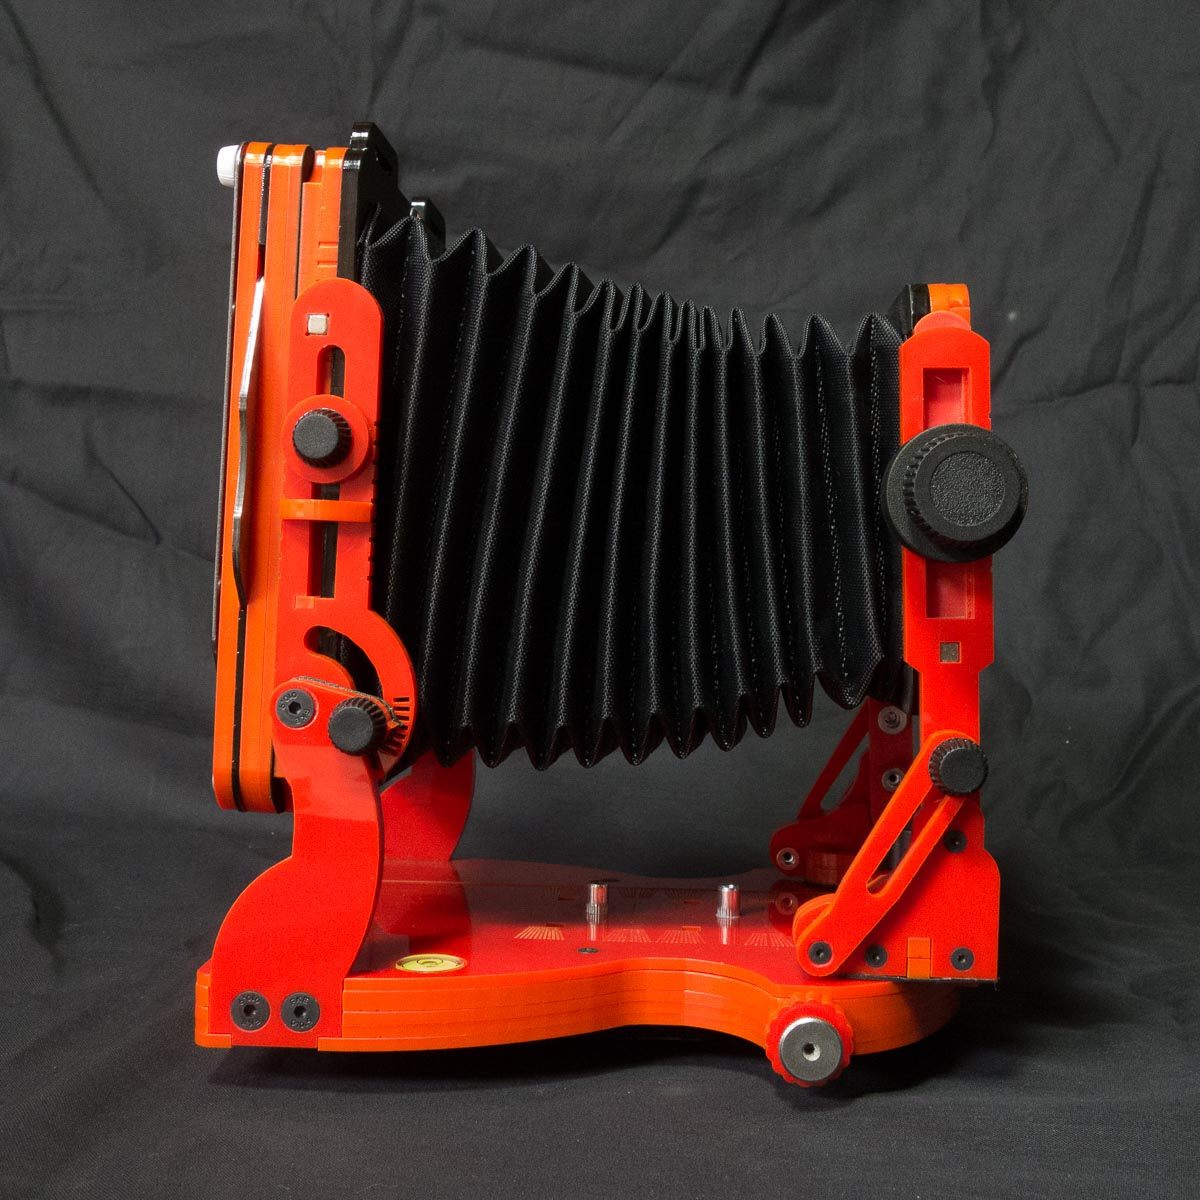 Chroma 4x5 review - Step 3: Open